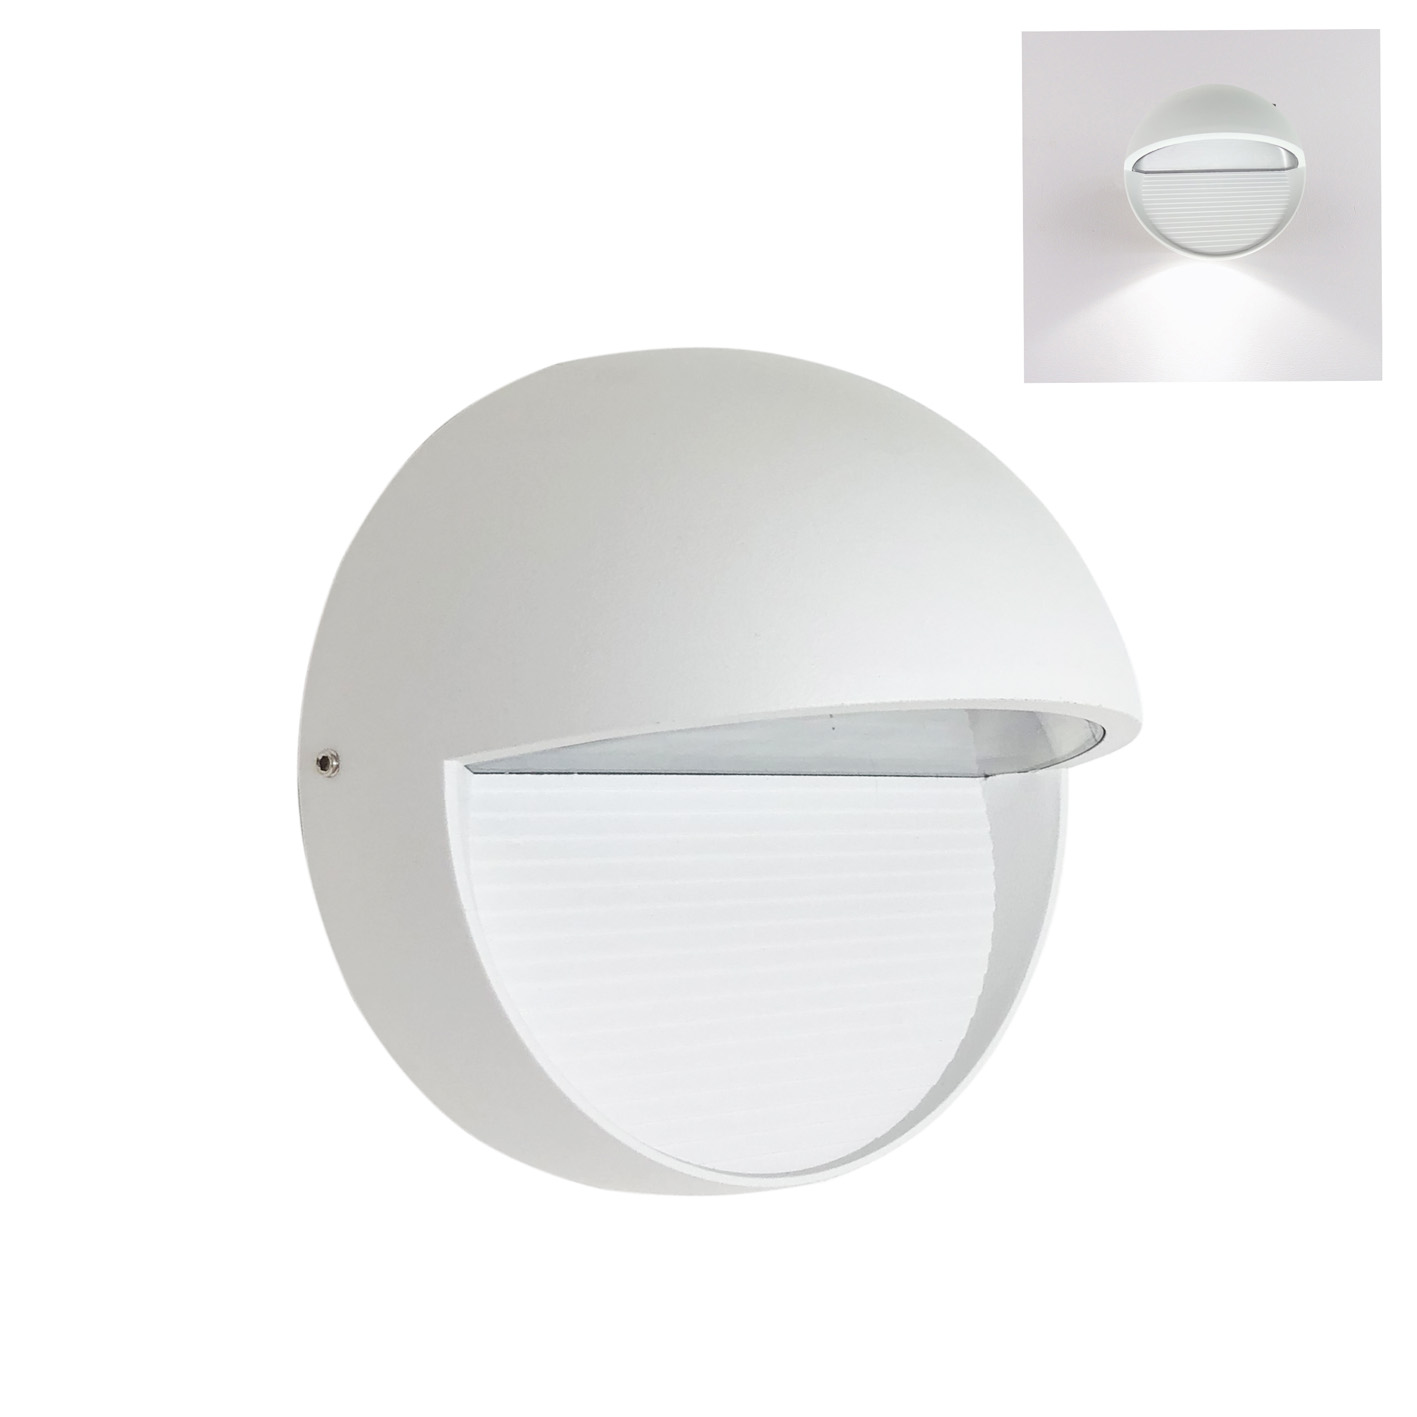 Lamp led wall sconce path light led 7W light, Wall application, Internal and External